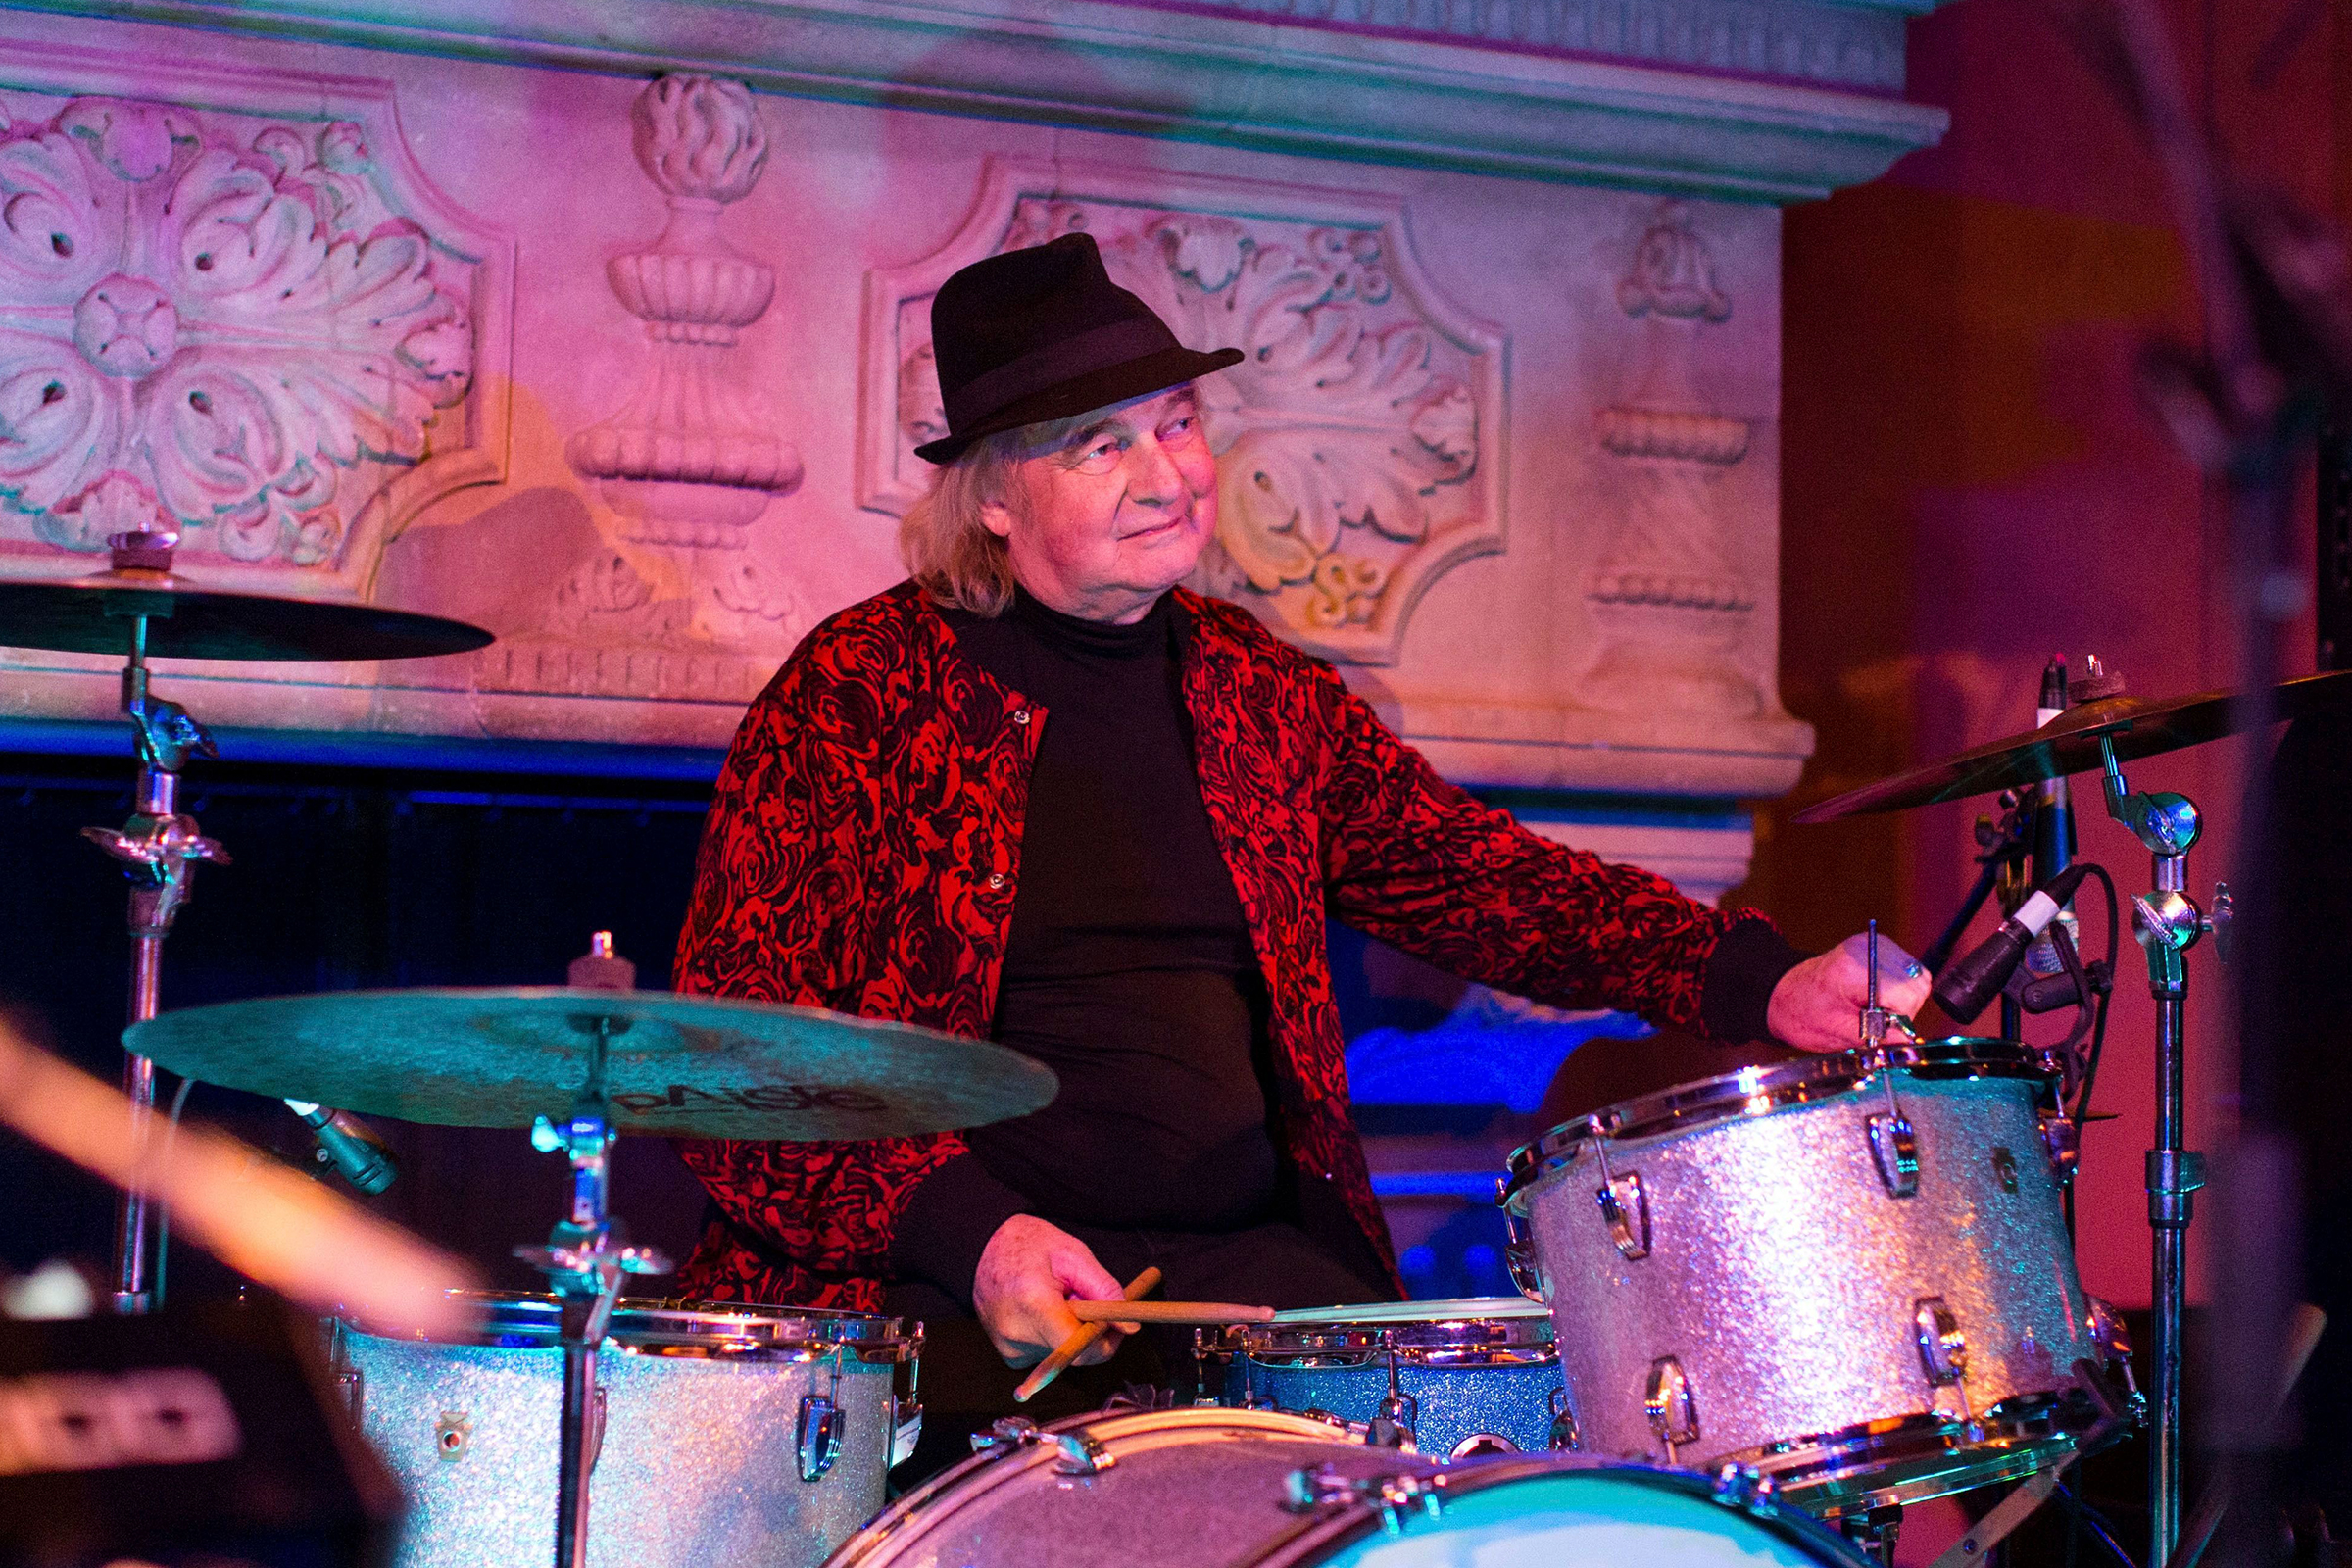 Alan White performs at Jonathan Cain and Friends at Rose Bar on Saturday, April, 8, 2017 in New YorkJonathan Cain and Friends, New York, USA - 8 Apr 2017